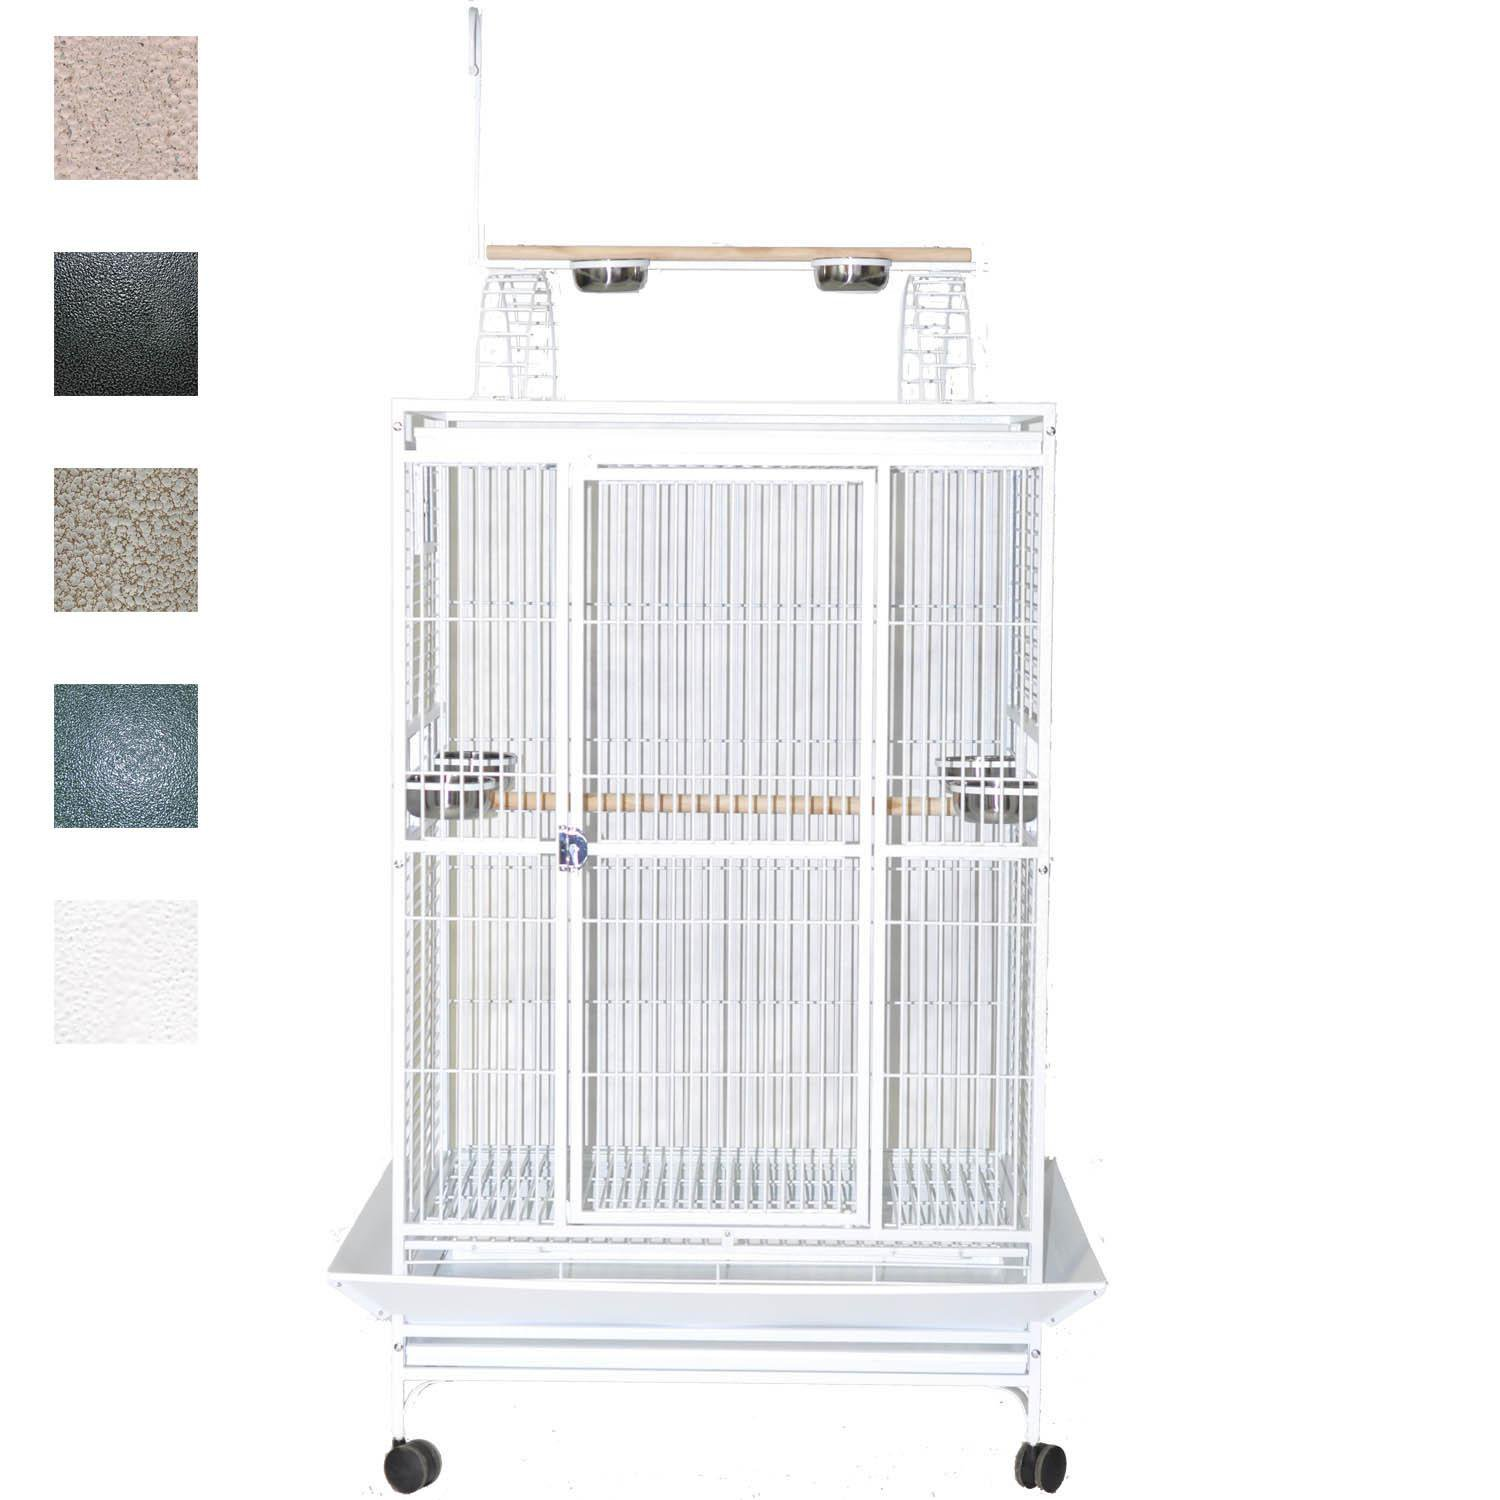 "A&e Cage Company 40"" X 30"" Play Top Bird Cage In Stainless Steel, Silver"